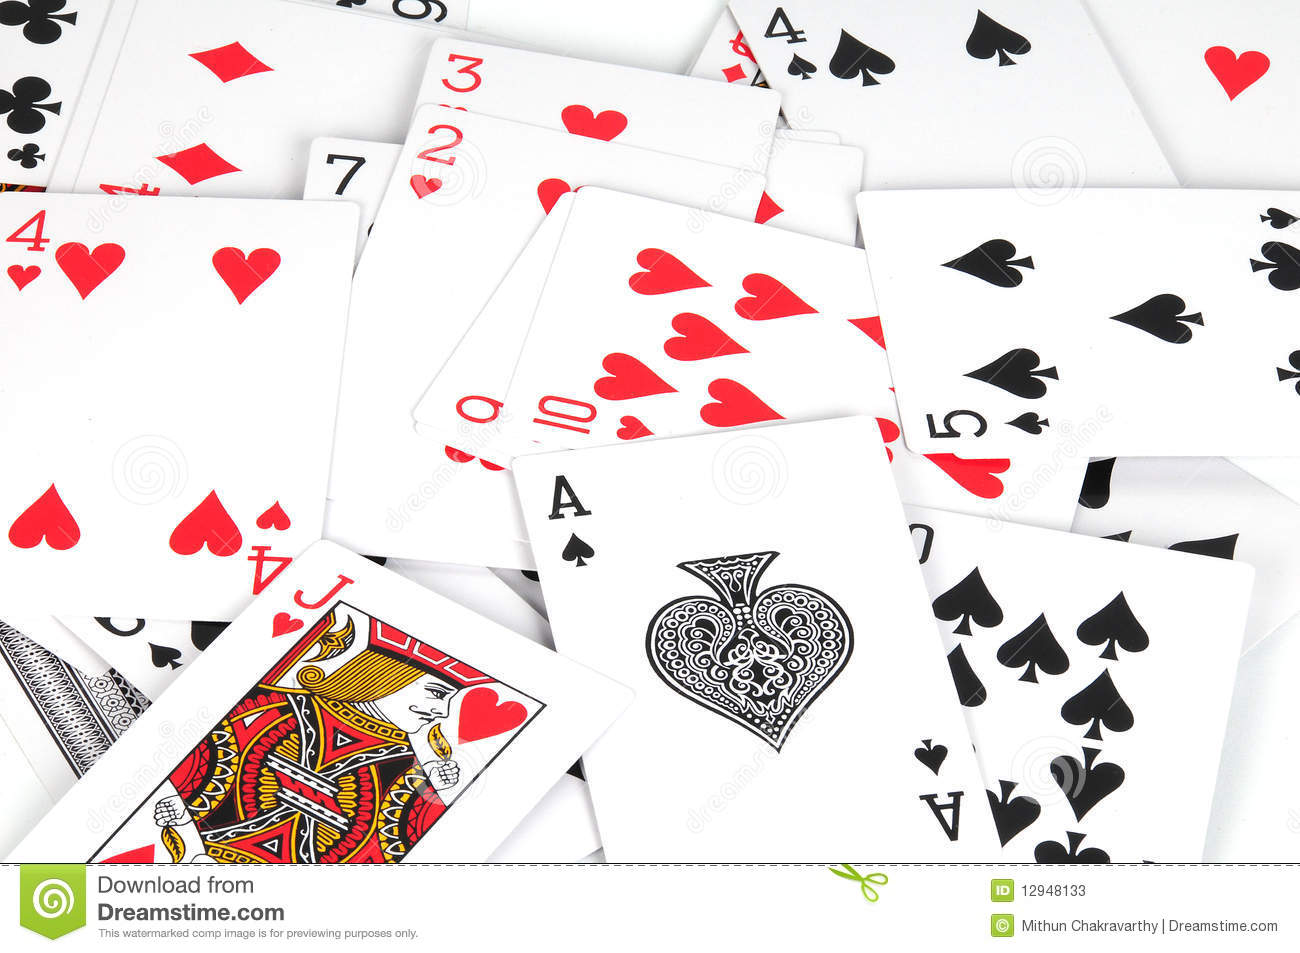 How to play poker with just cards